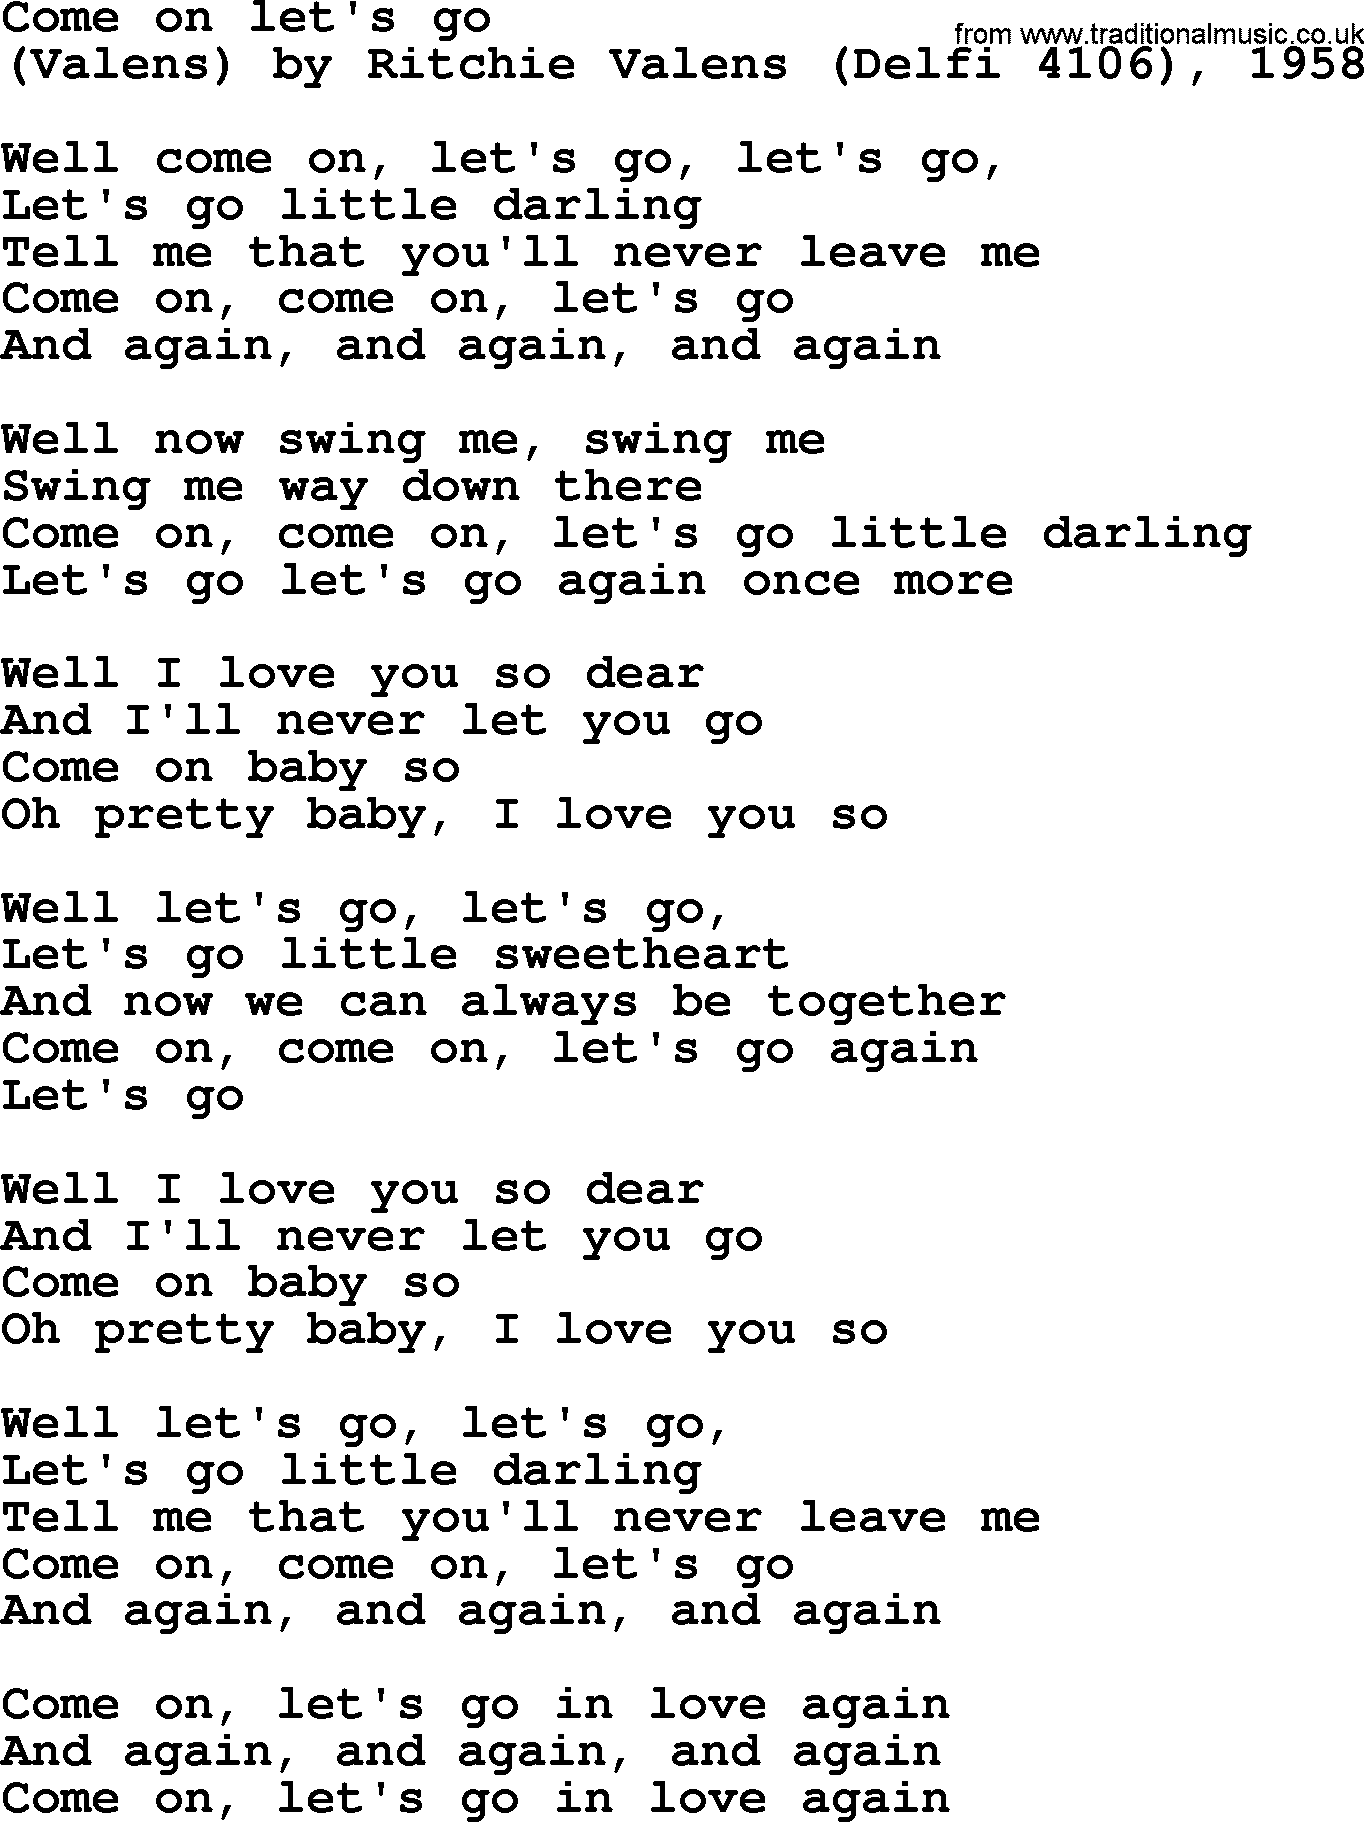 Bruce Springsteen song: Come On Let's Go, lyrics